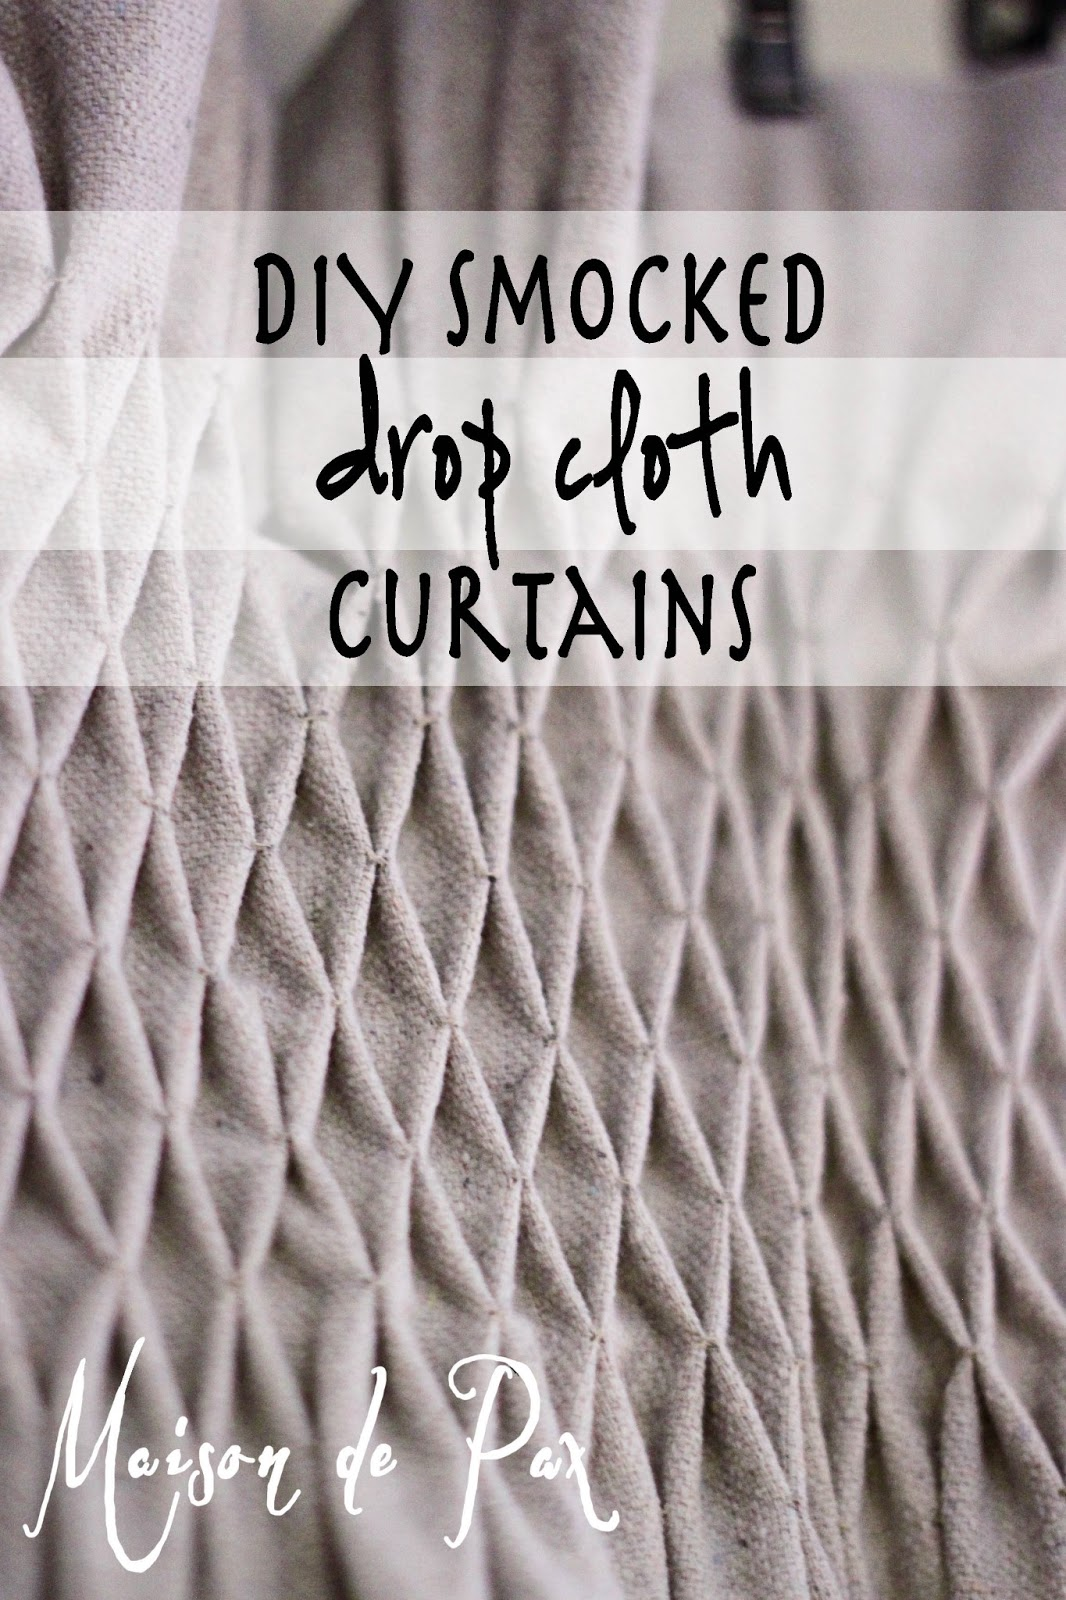 projects fabulous burlap home diy beautify smocked decor curtains